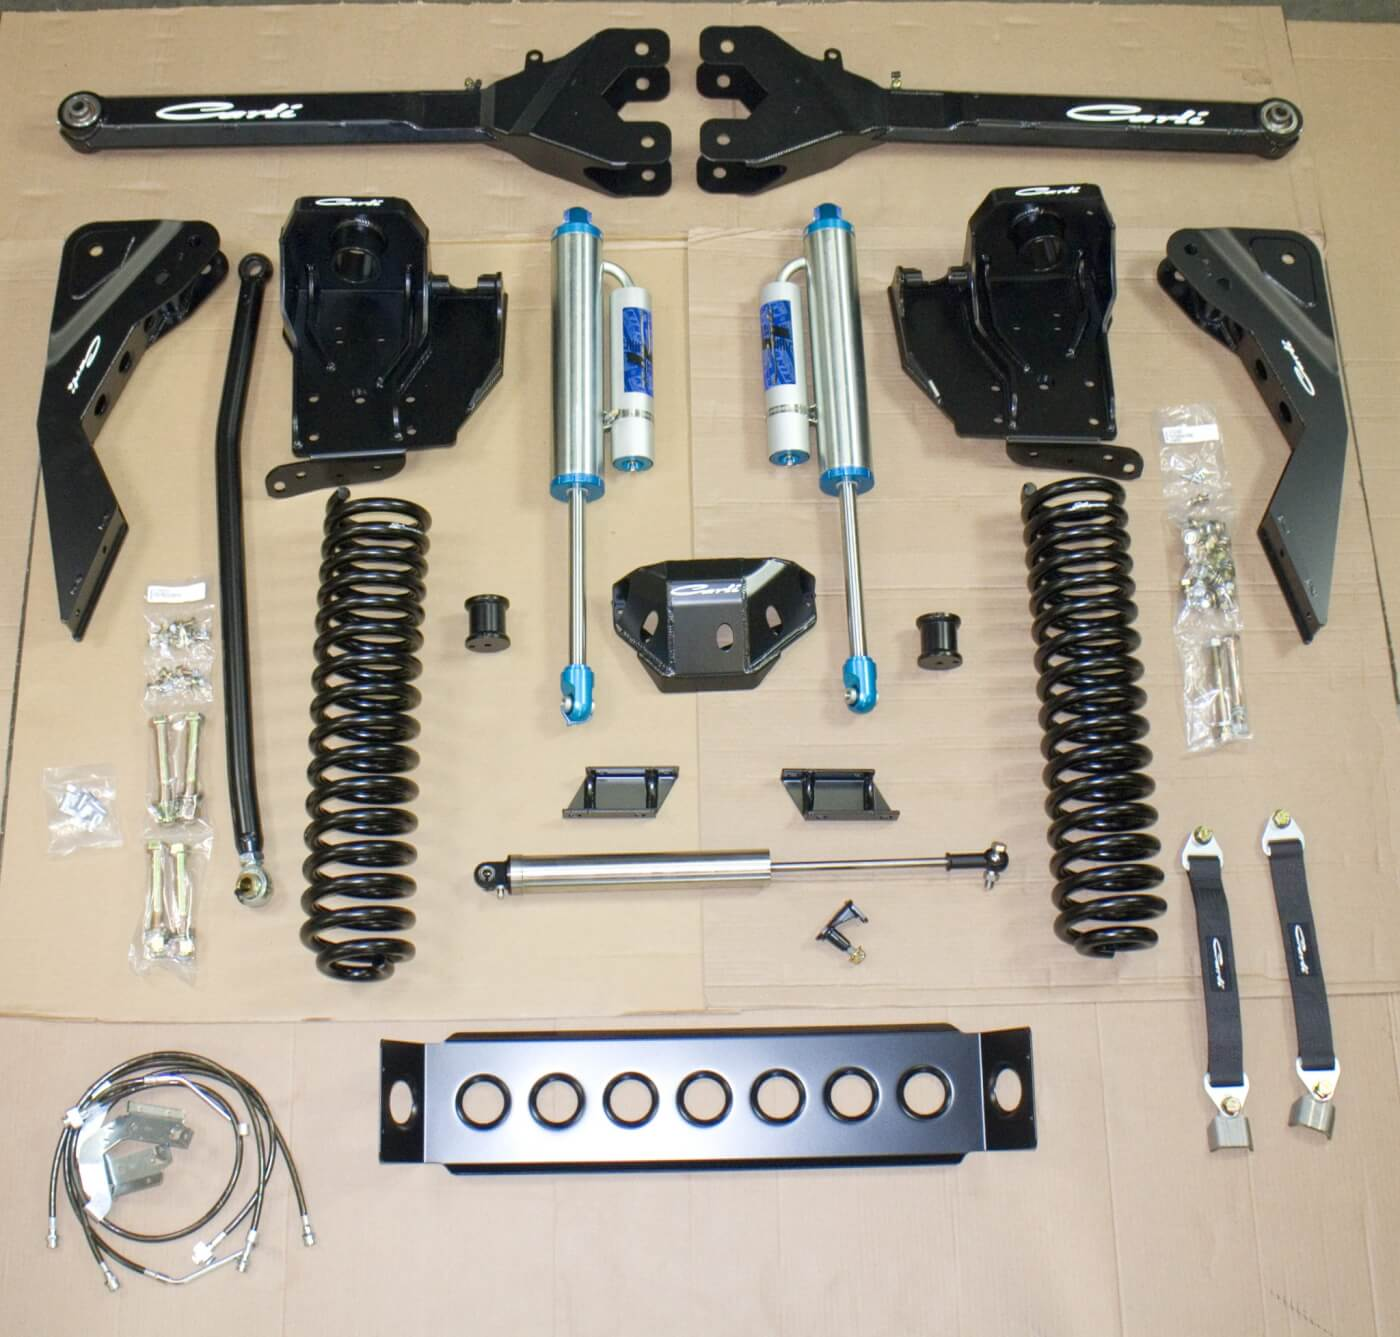 1. Here you see the front components of the Ford F-250 lift in these pages. This is the full Dominator 3.0, 4.5-inch lift setup. The front upgrade included new King remote reservoir shocks, longer springs, new front coils, coil buckets and much more.